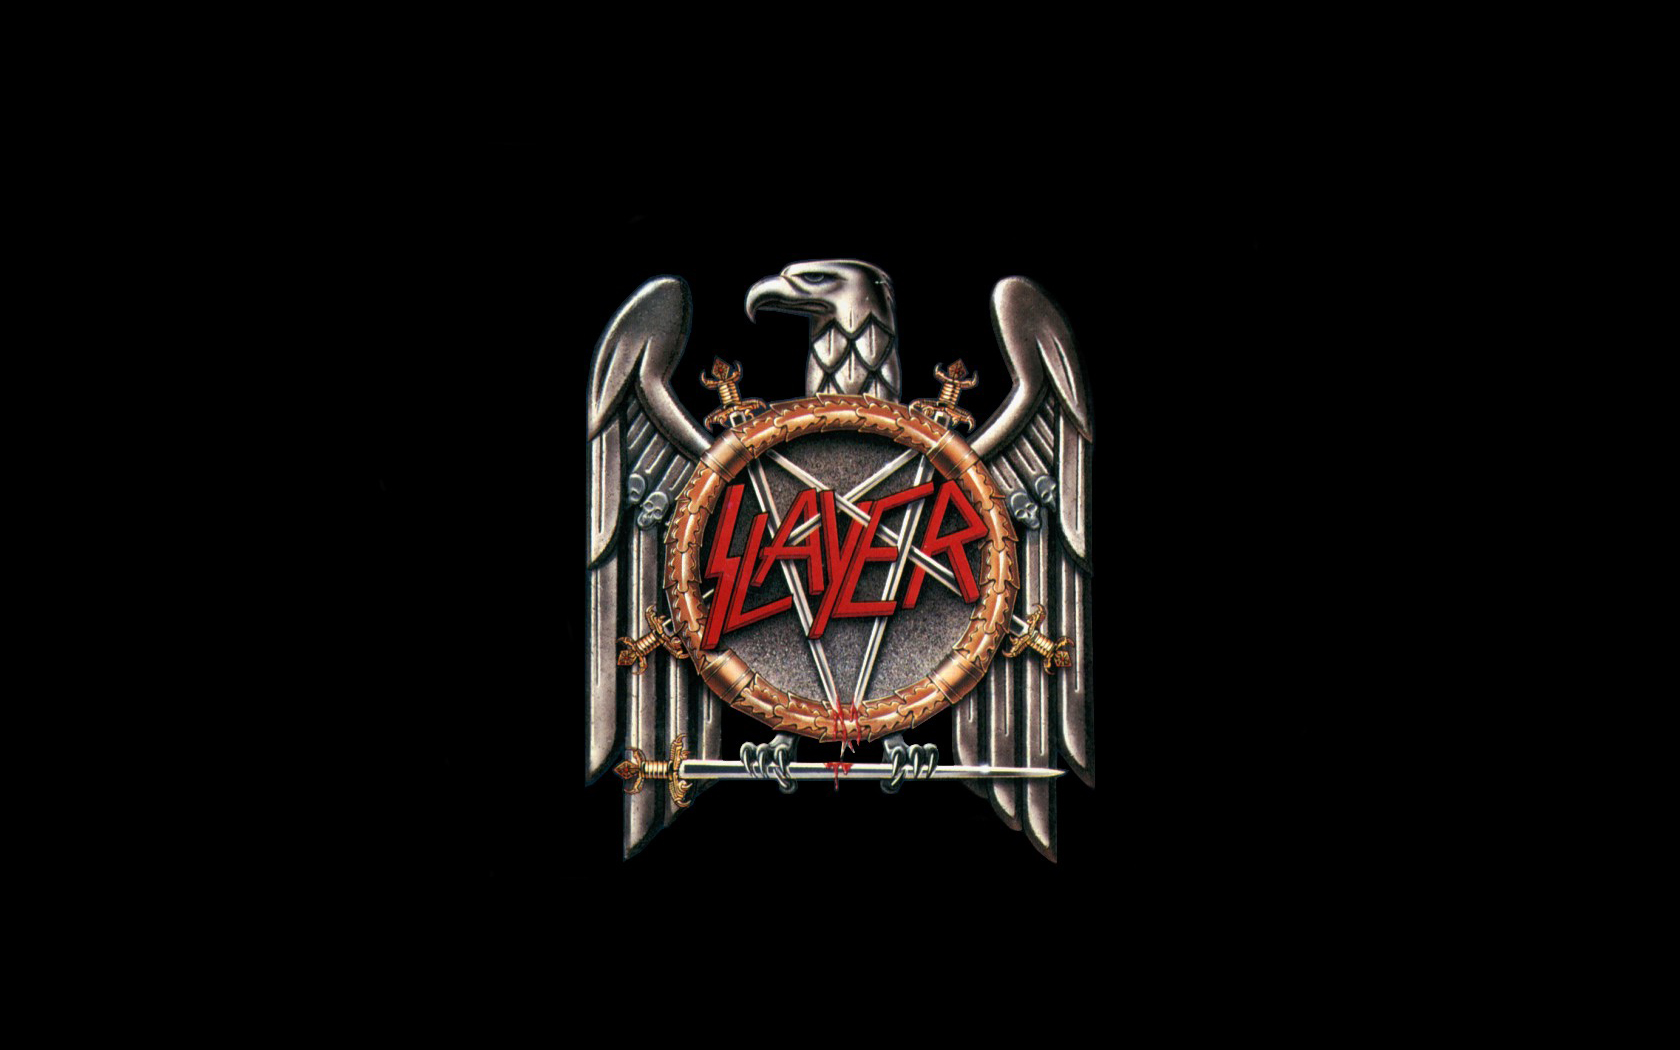 Slayer Computer Wallpapers, Desktop Backgrounds ...